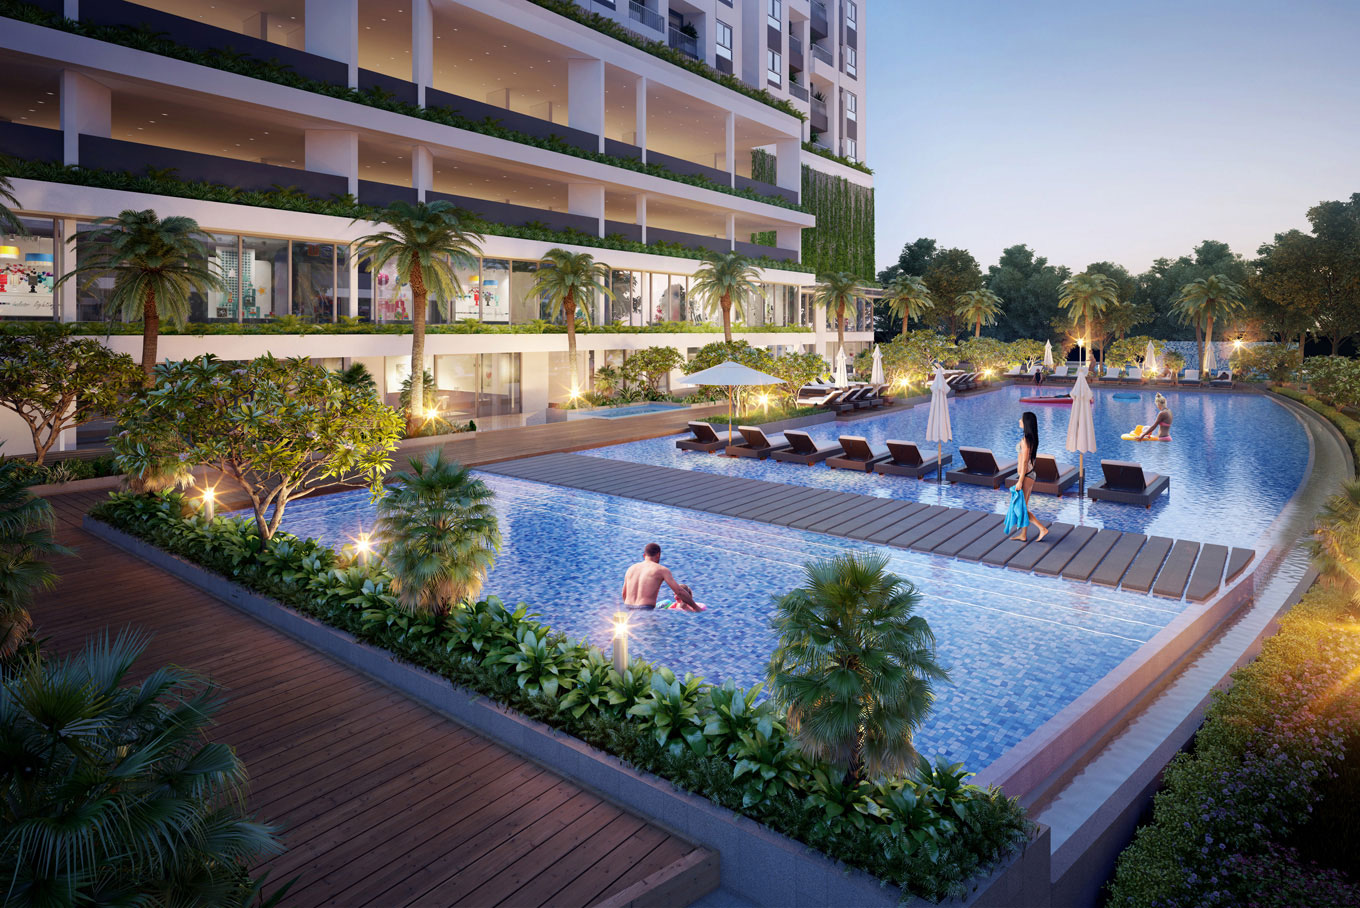 grandnest city khải vy